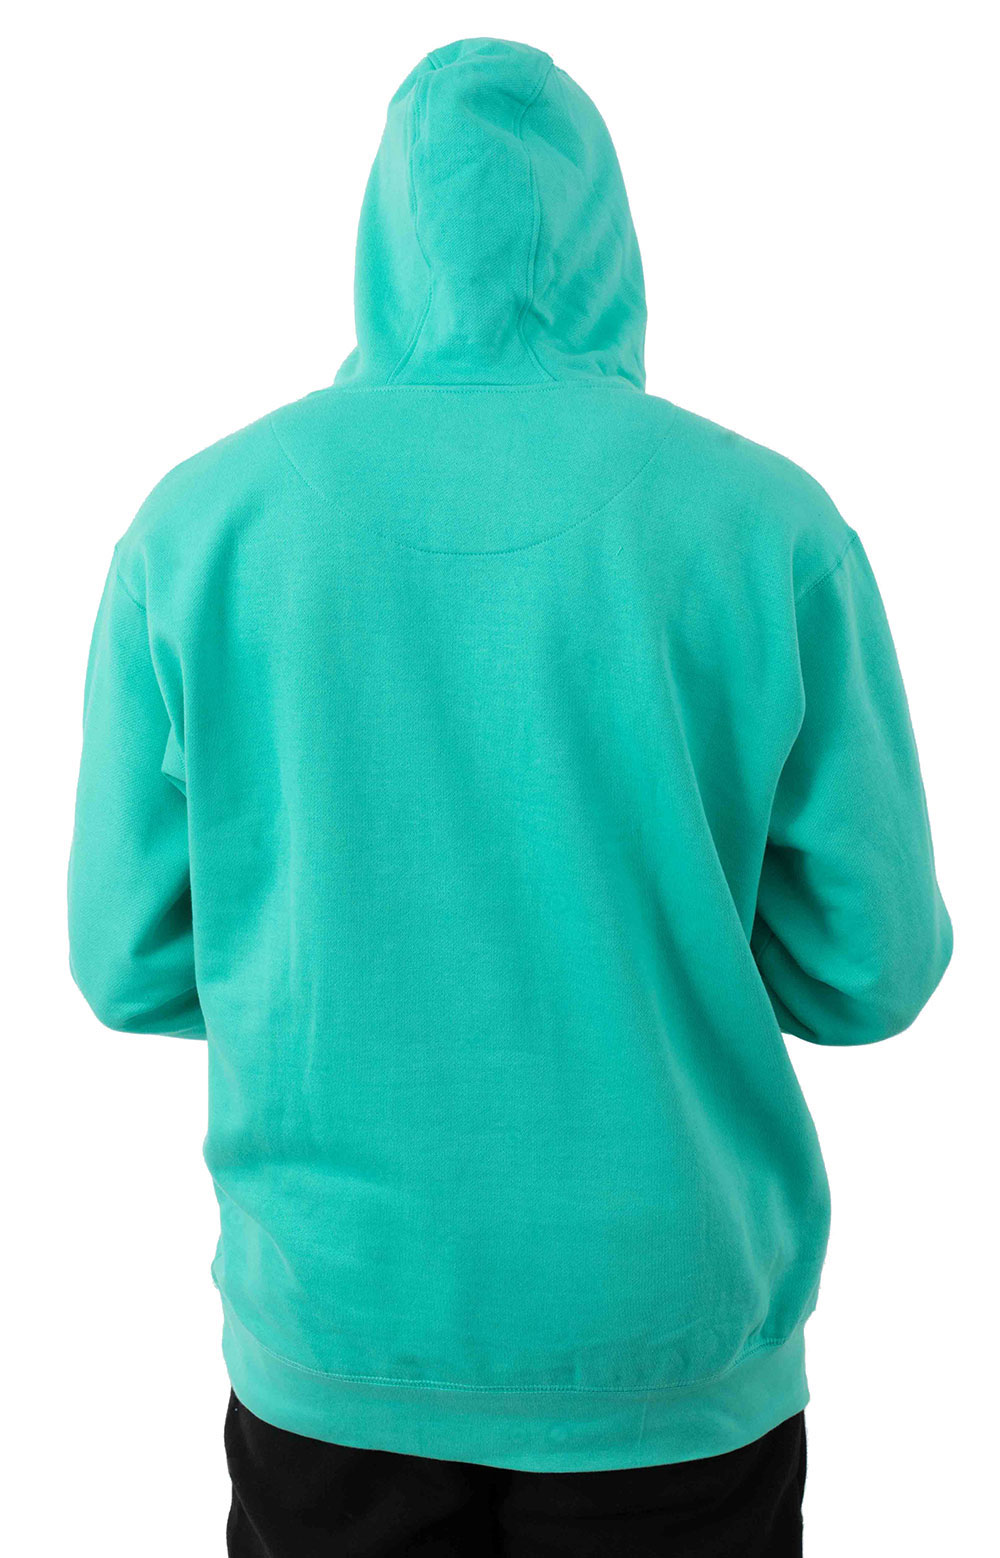 Stacked Logo Pullover Hoodie - Teal 3